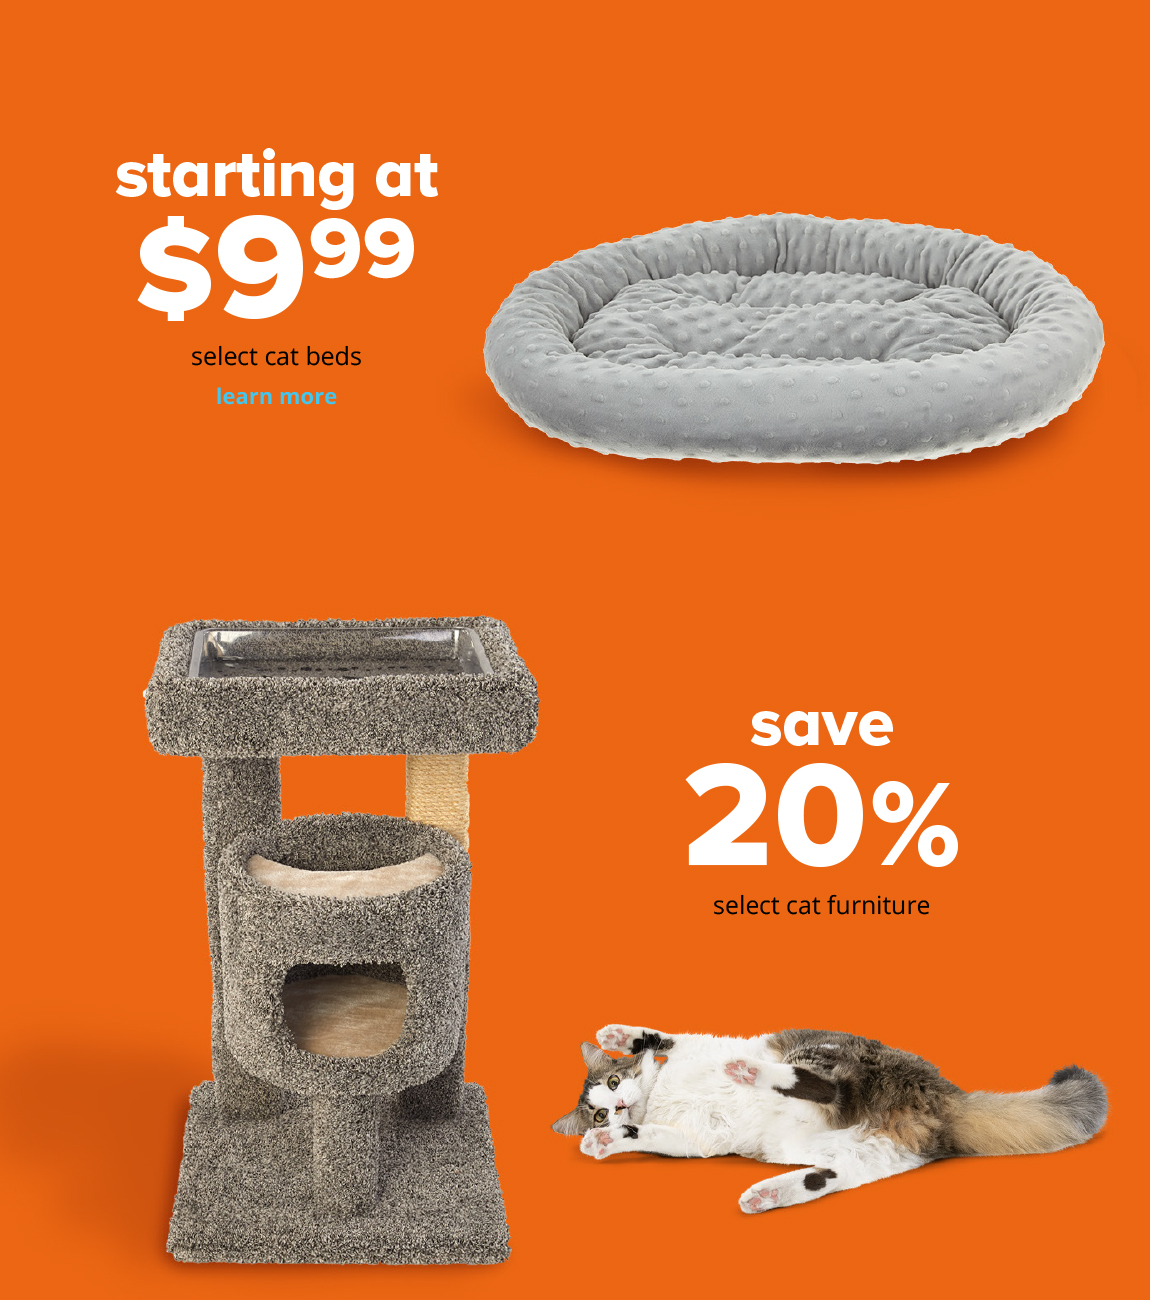 starting at $9.99 select cat beds, save 20% select cat furniture